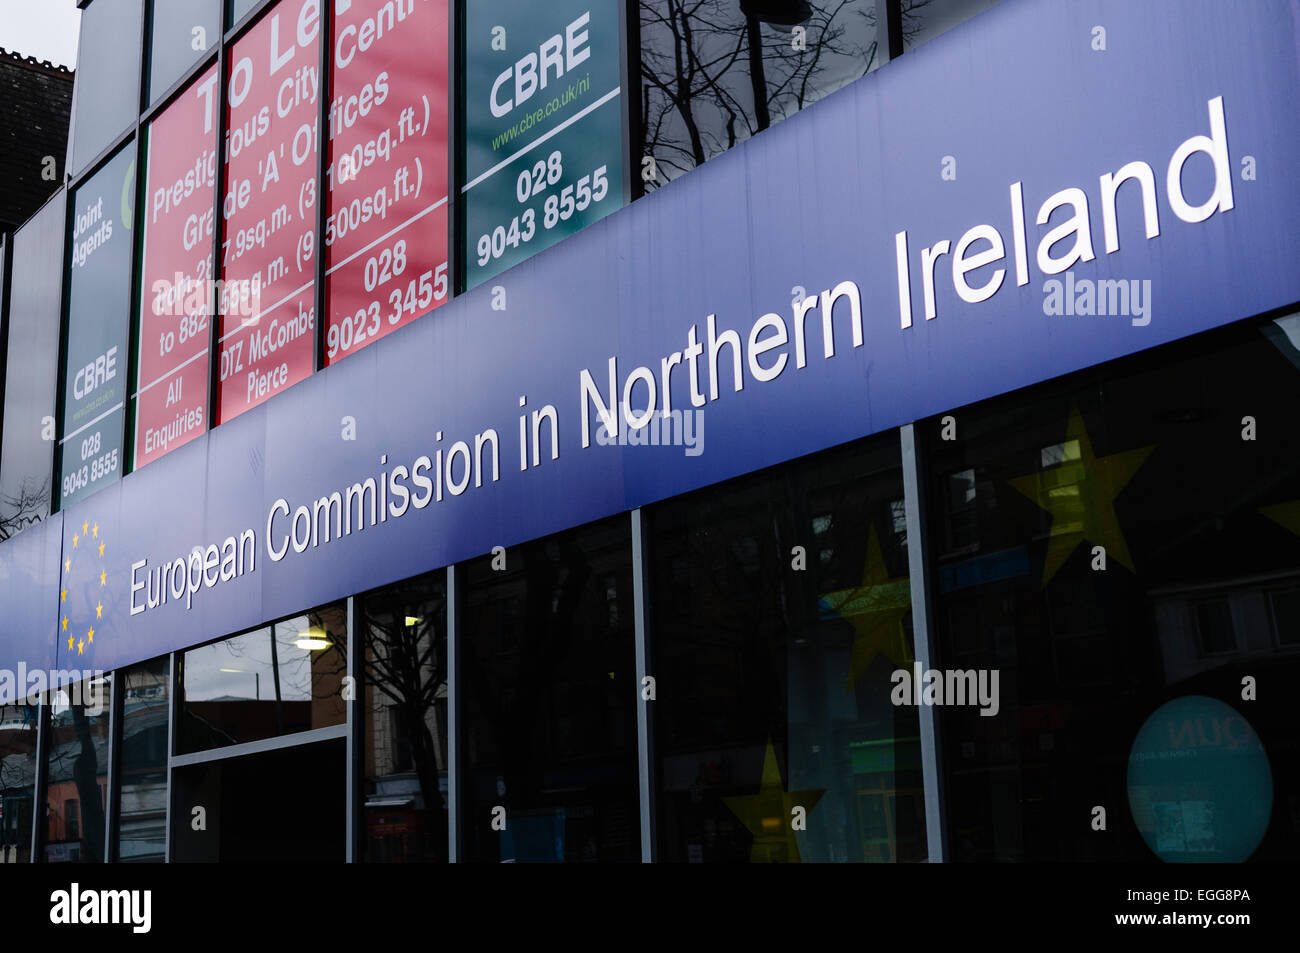 European Commission in Northern Ireland Stock Photo